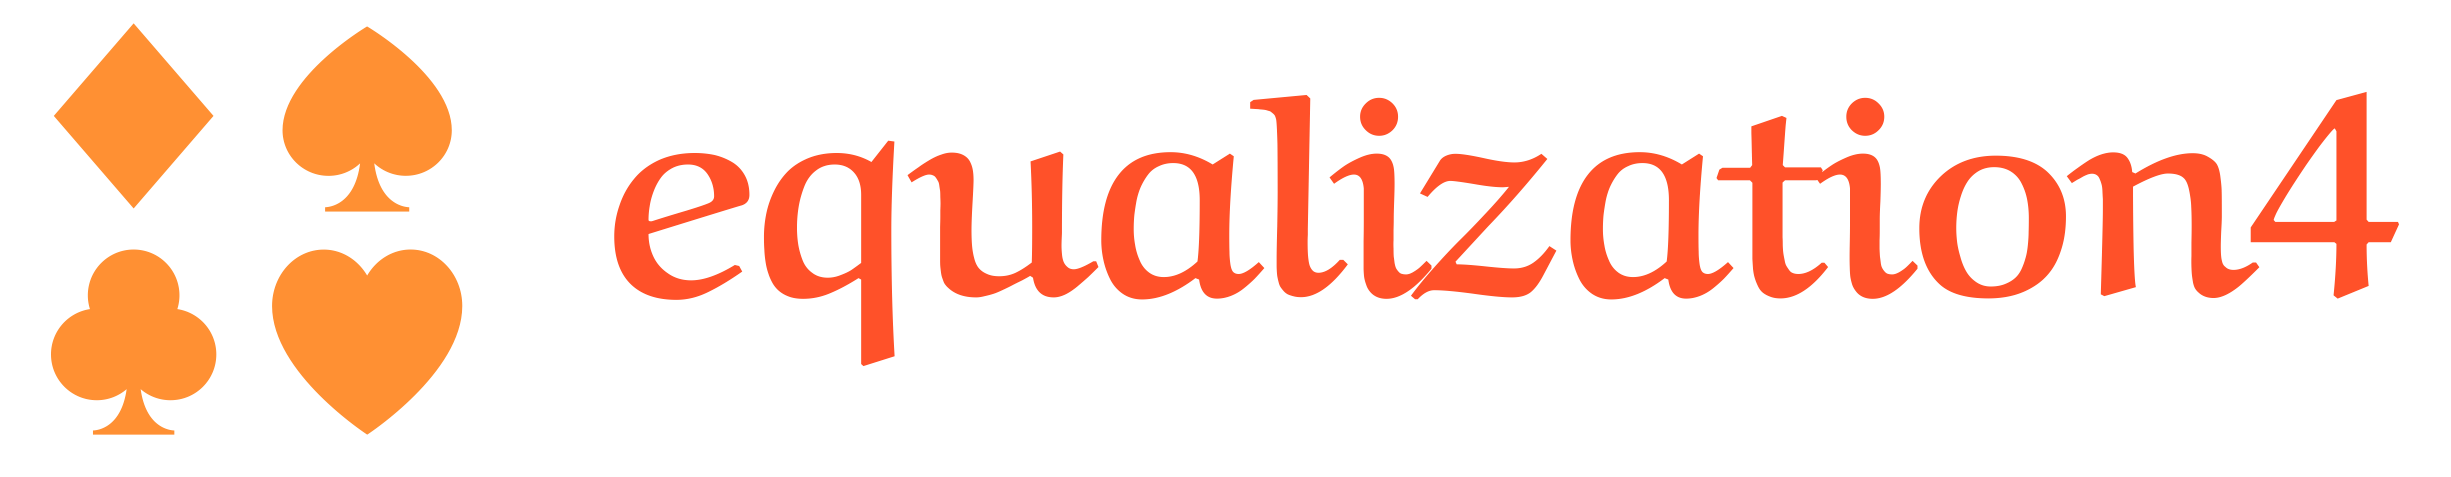 equalization4.org